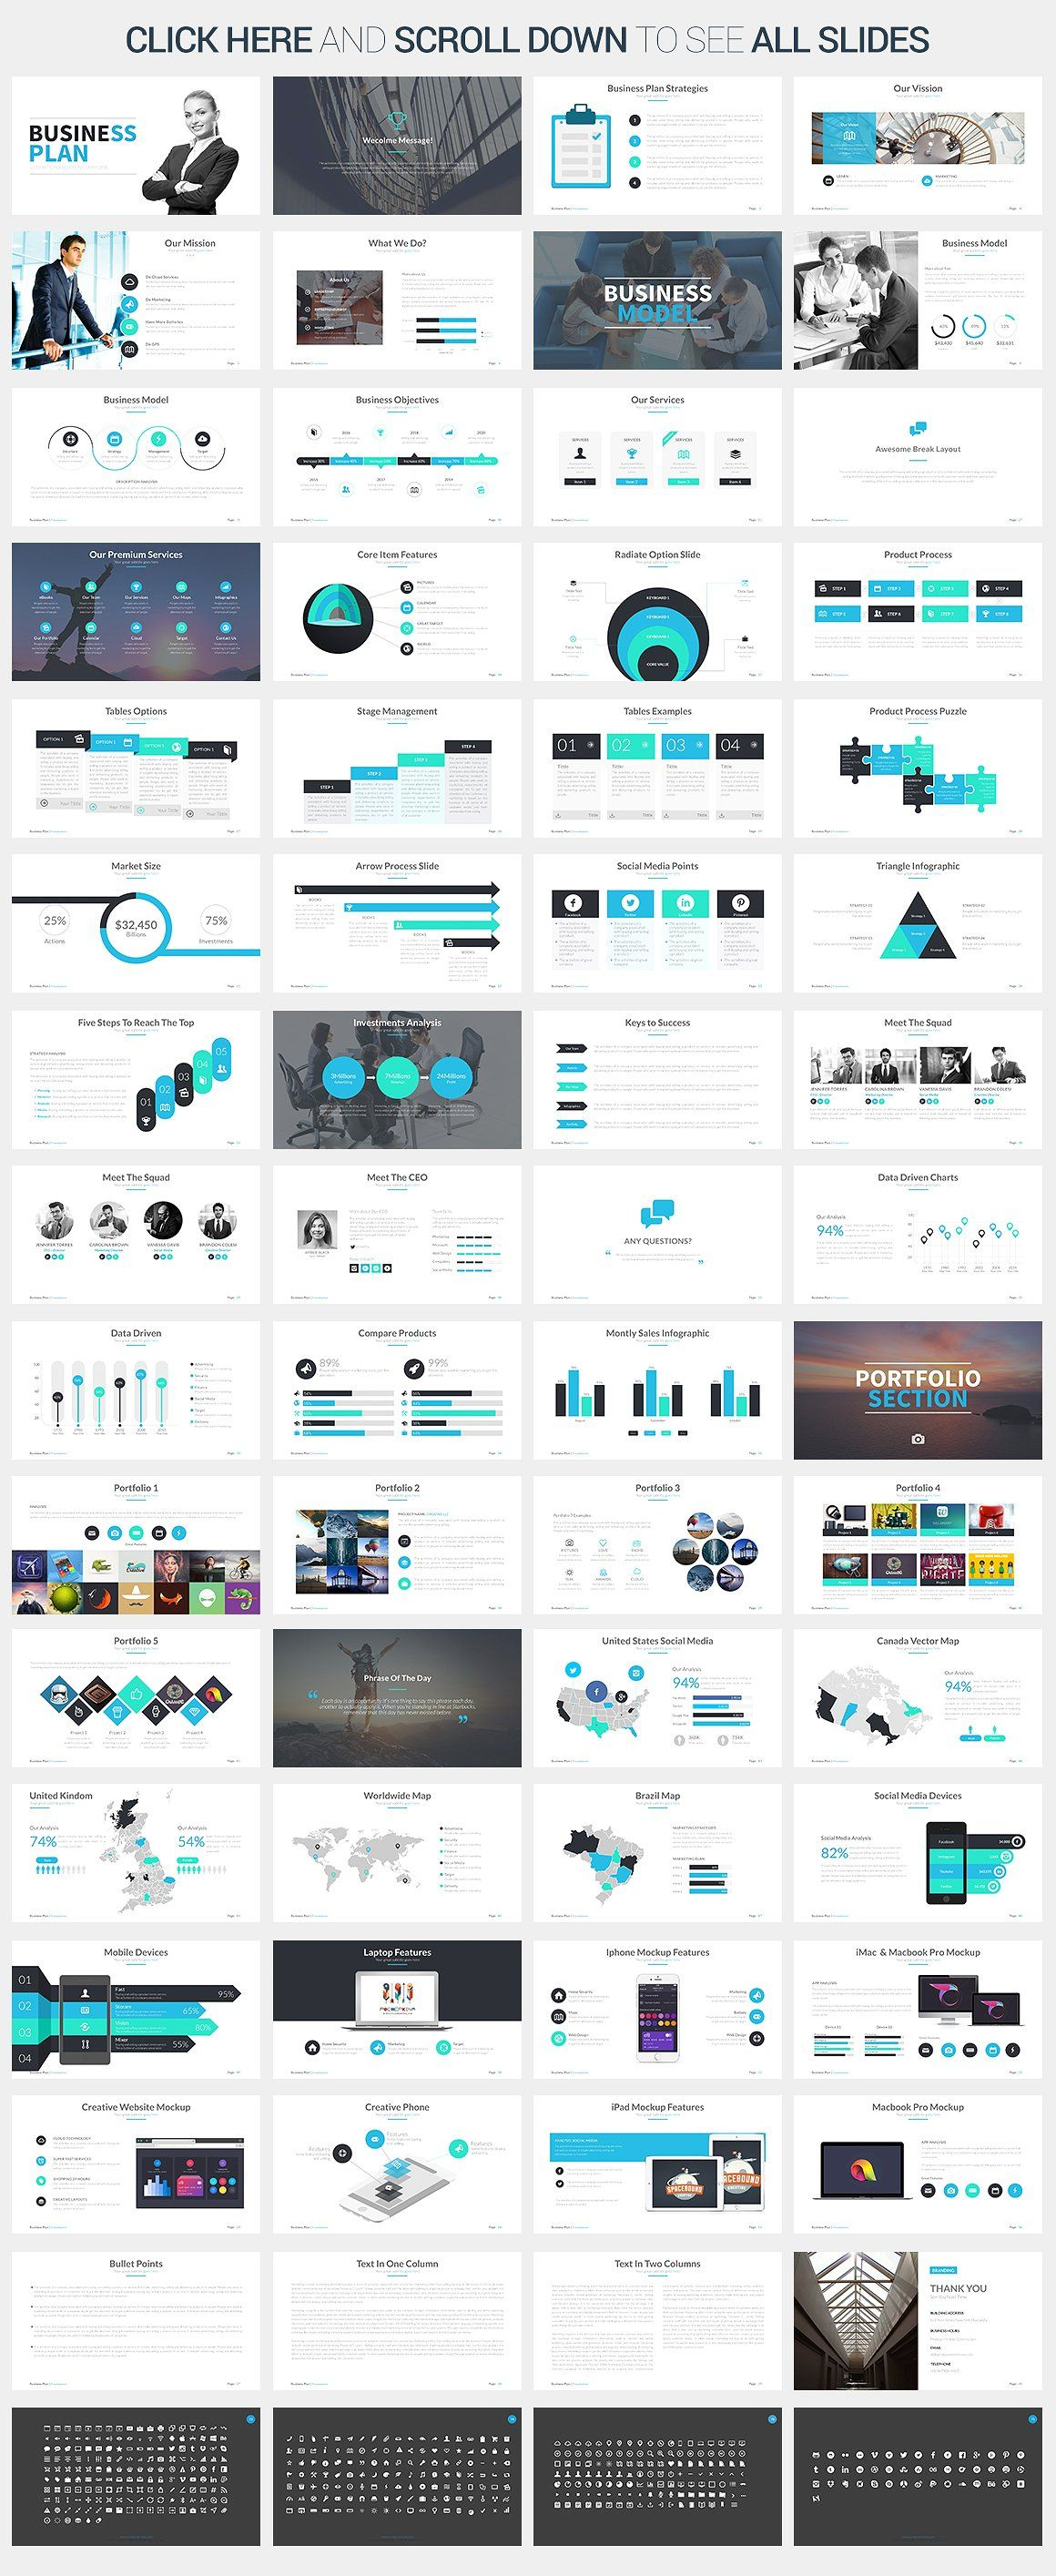 Business plan google slides template by slidepro on creativemarket business plan google slides template by slidepro on creativemarket cheaphphosting Choice Image